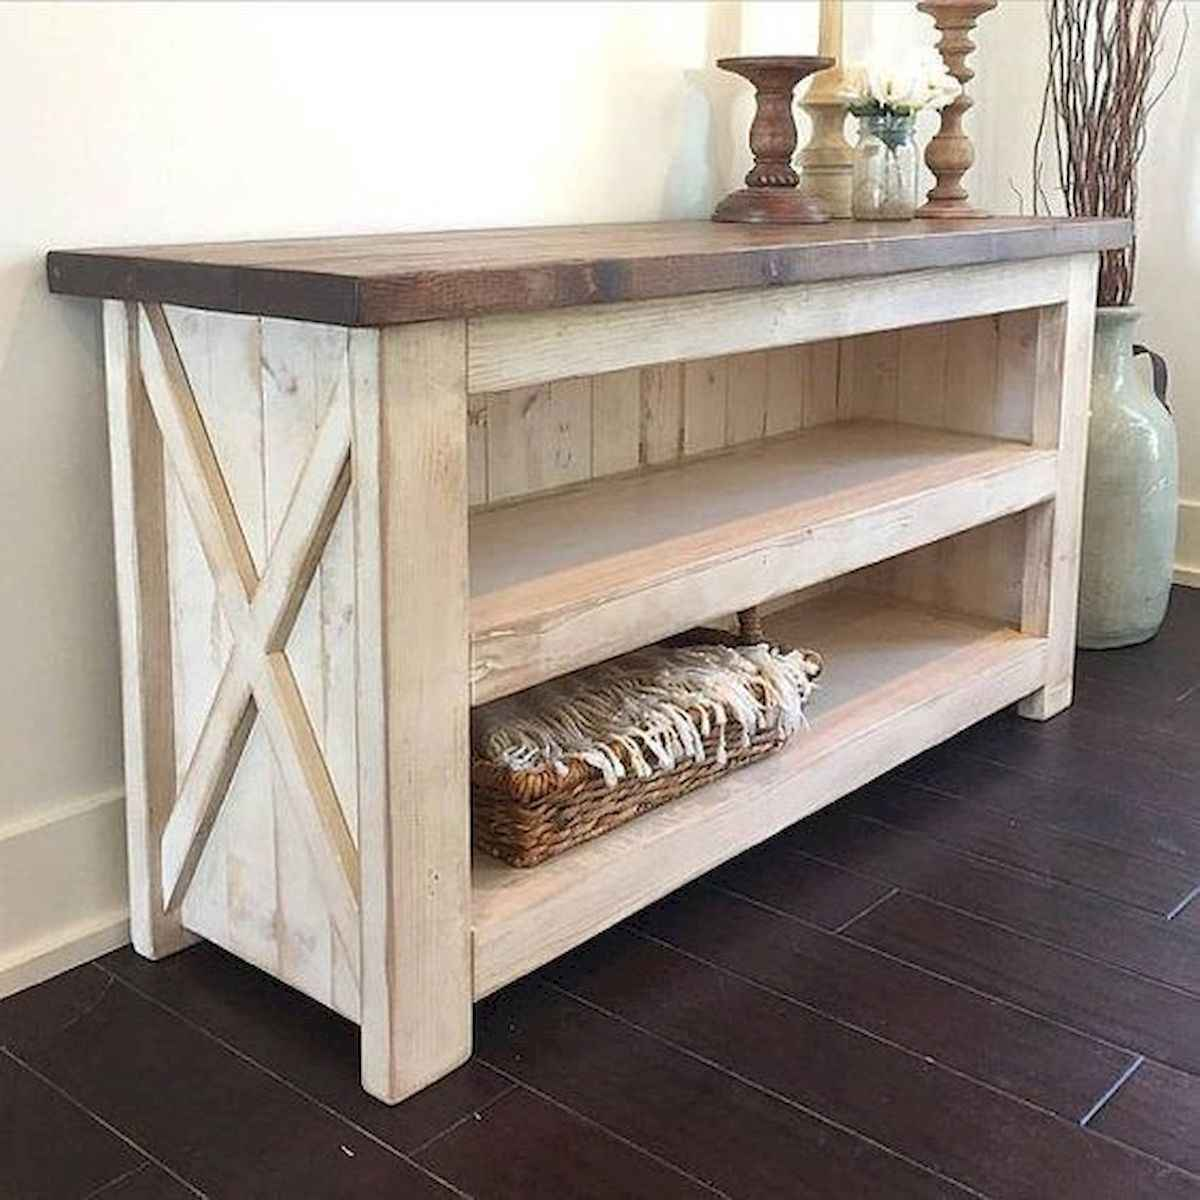 60 Fantastic DIY Projects Wood Furniture Ideas (51)